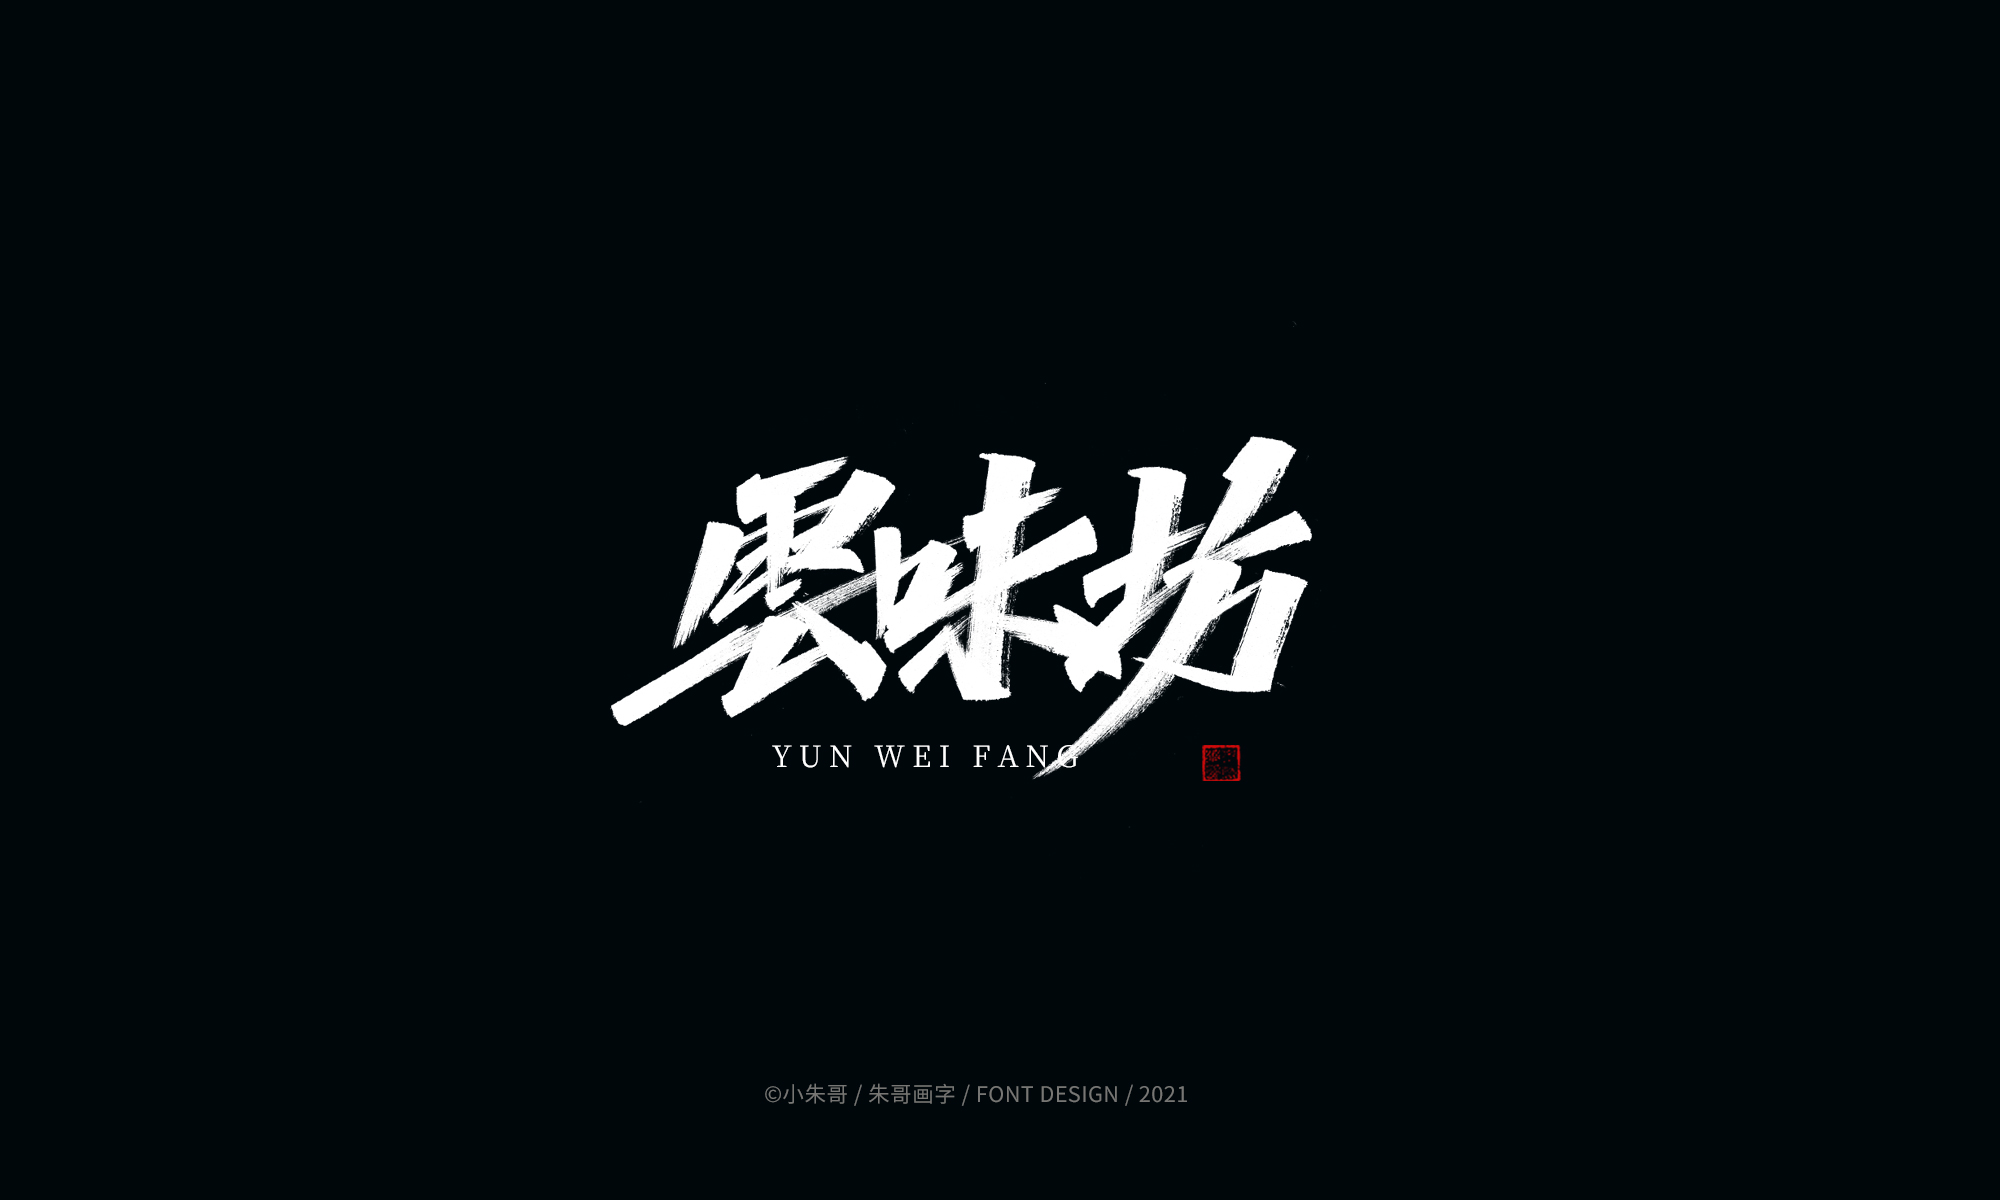 19P Collection of the latest Chinese font design schemes in 2021 #.36